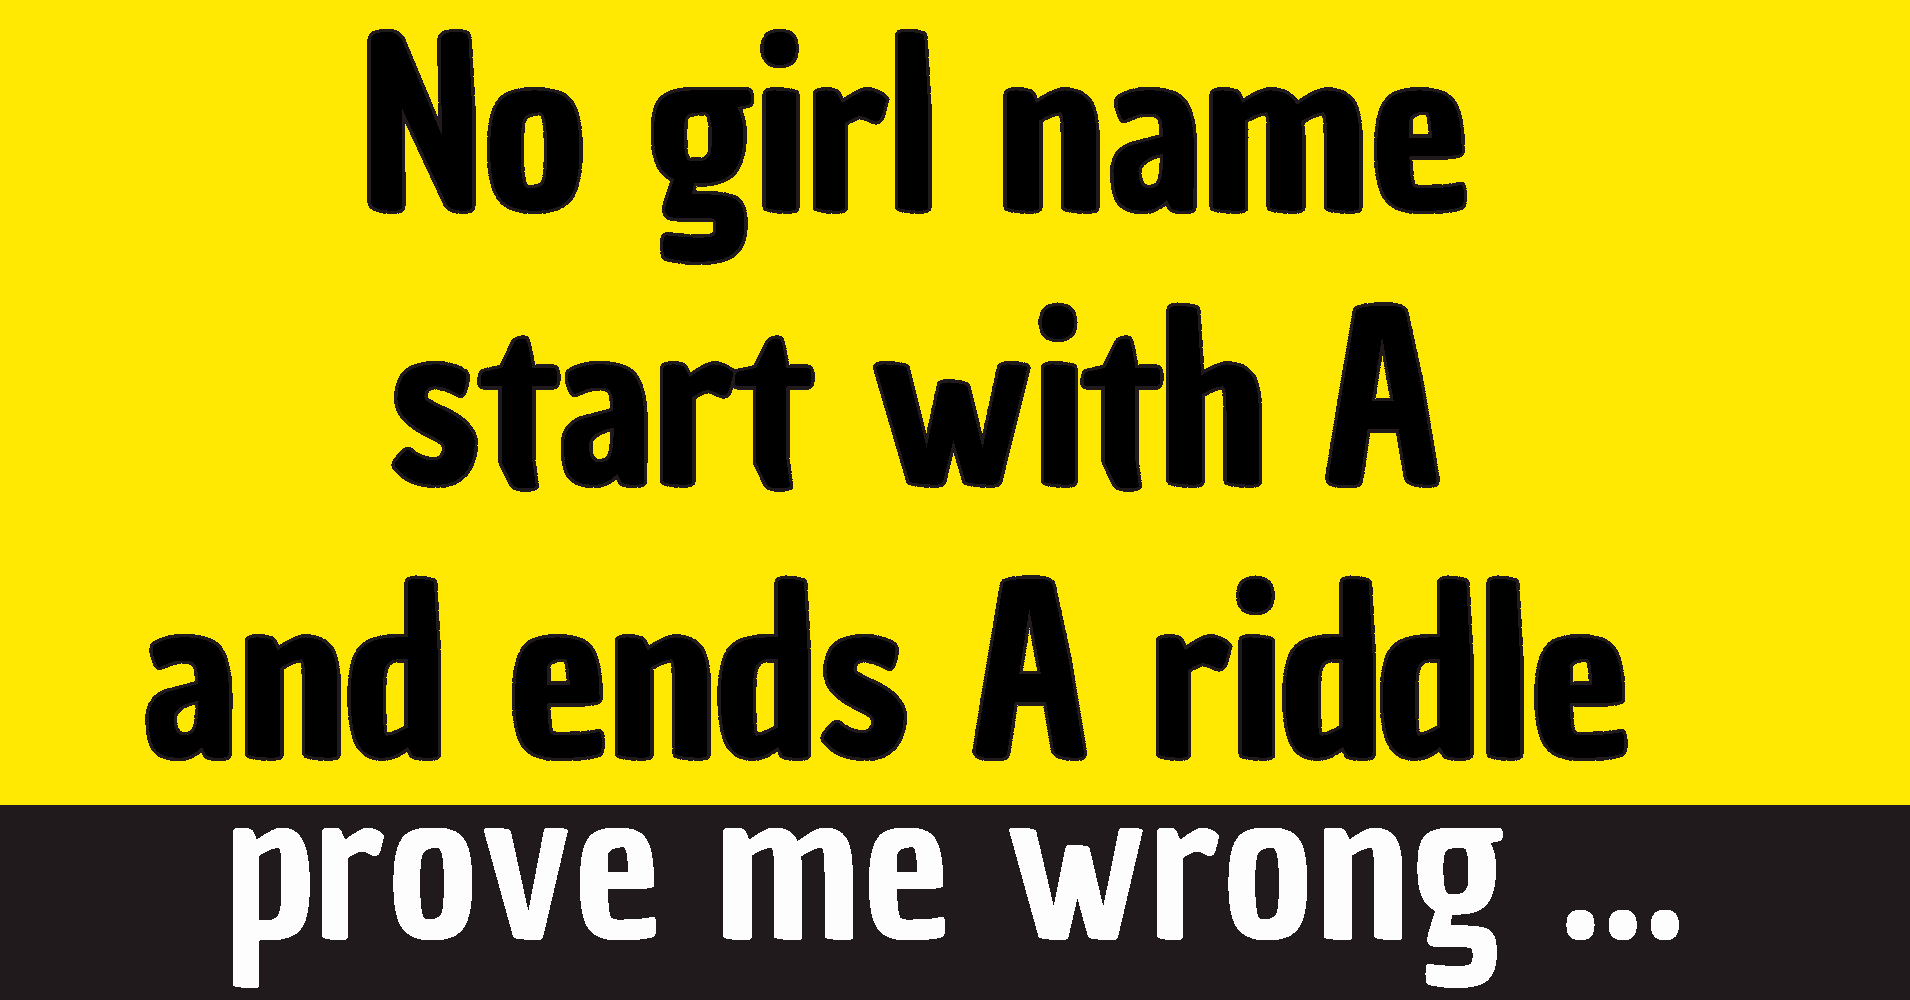 no girl name start with A and ends A riddle answer